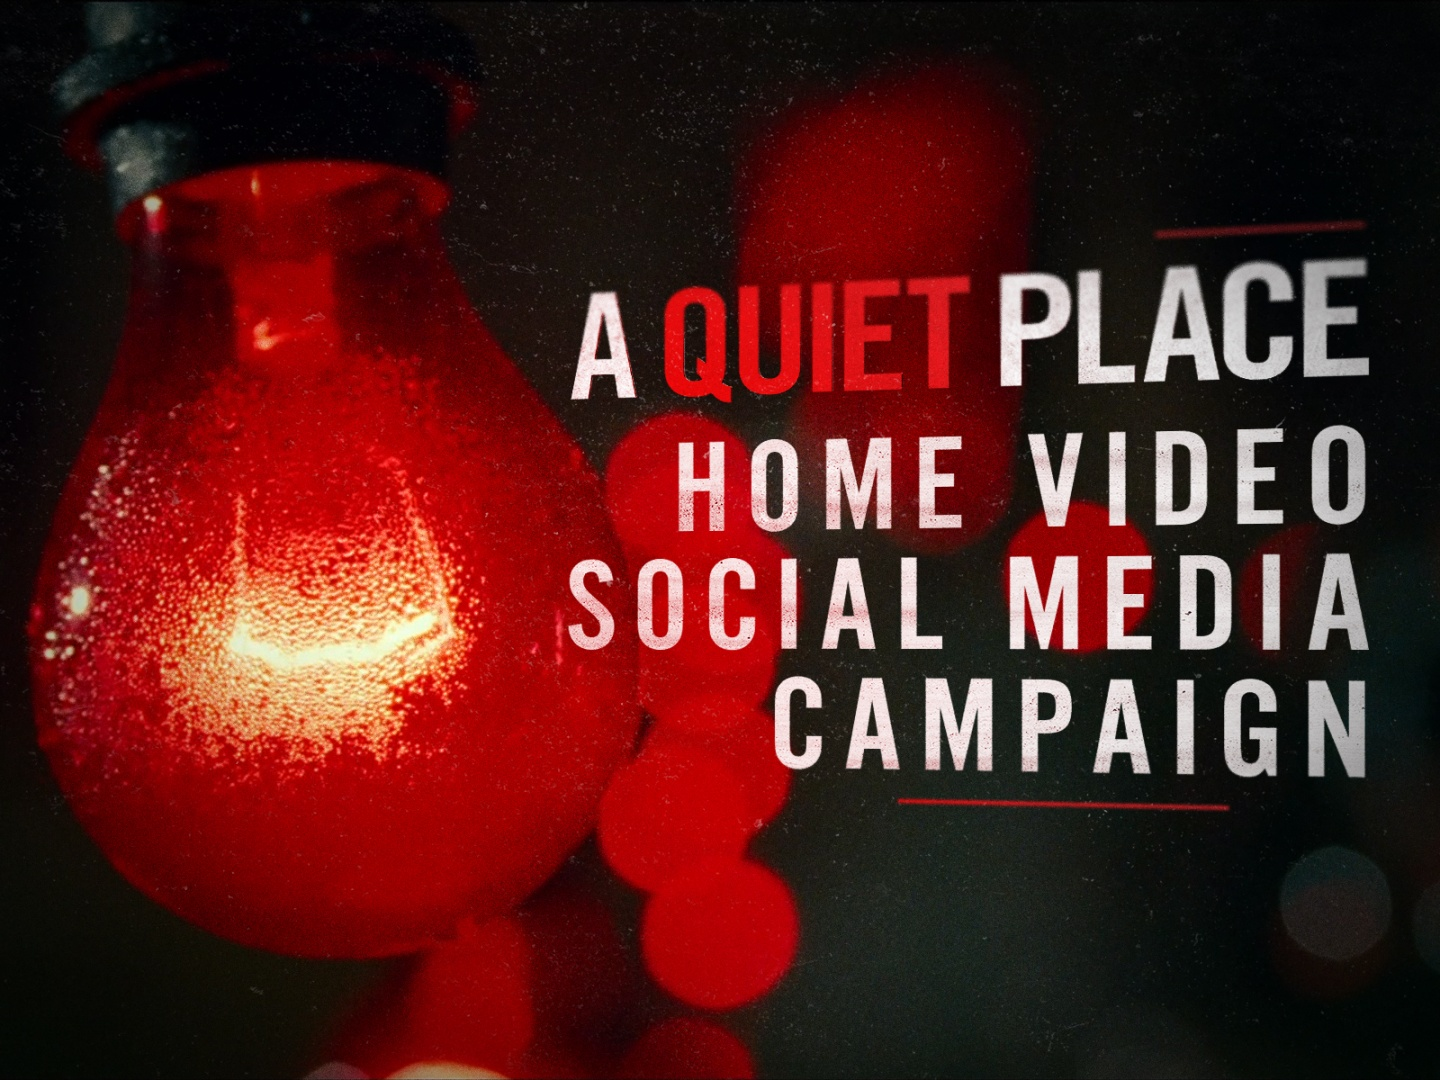 A Quiet Place - Home Video - Social Media Campaign Thumbnail